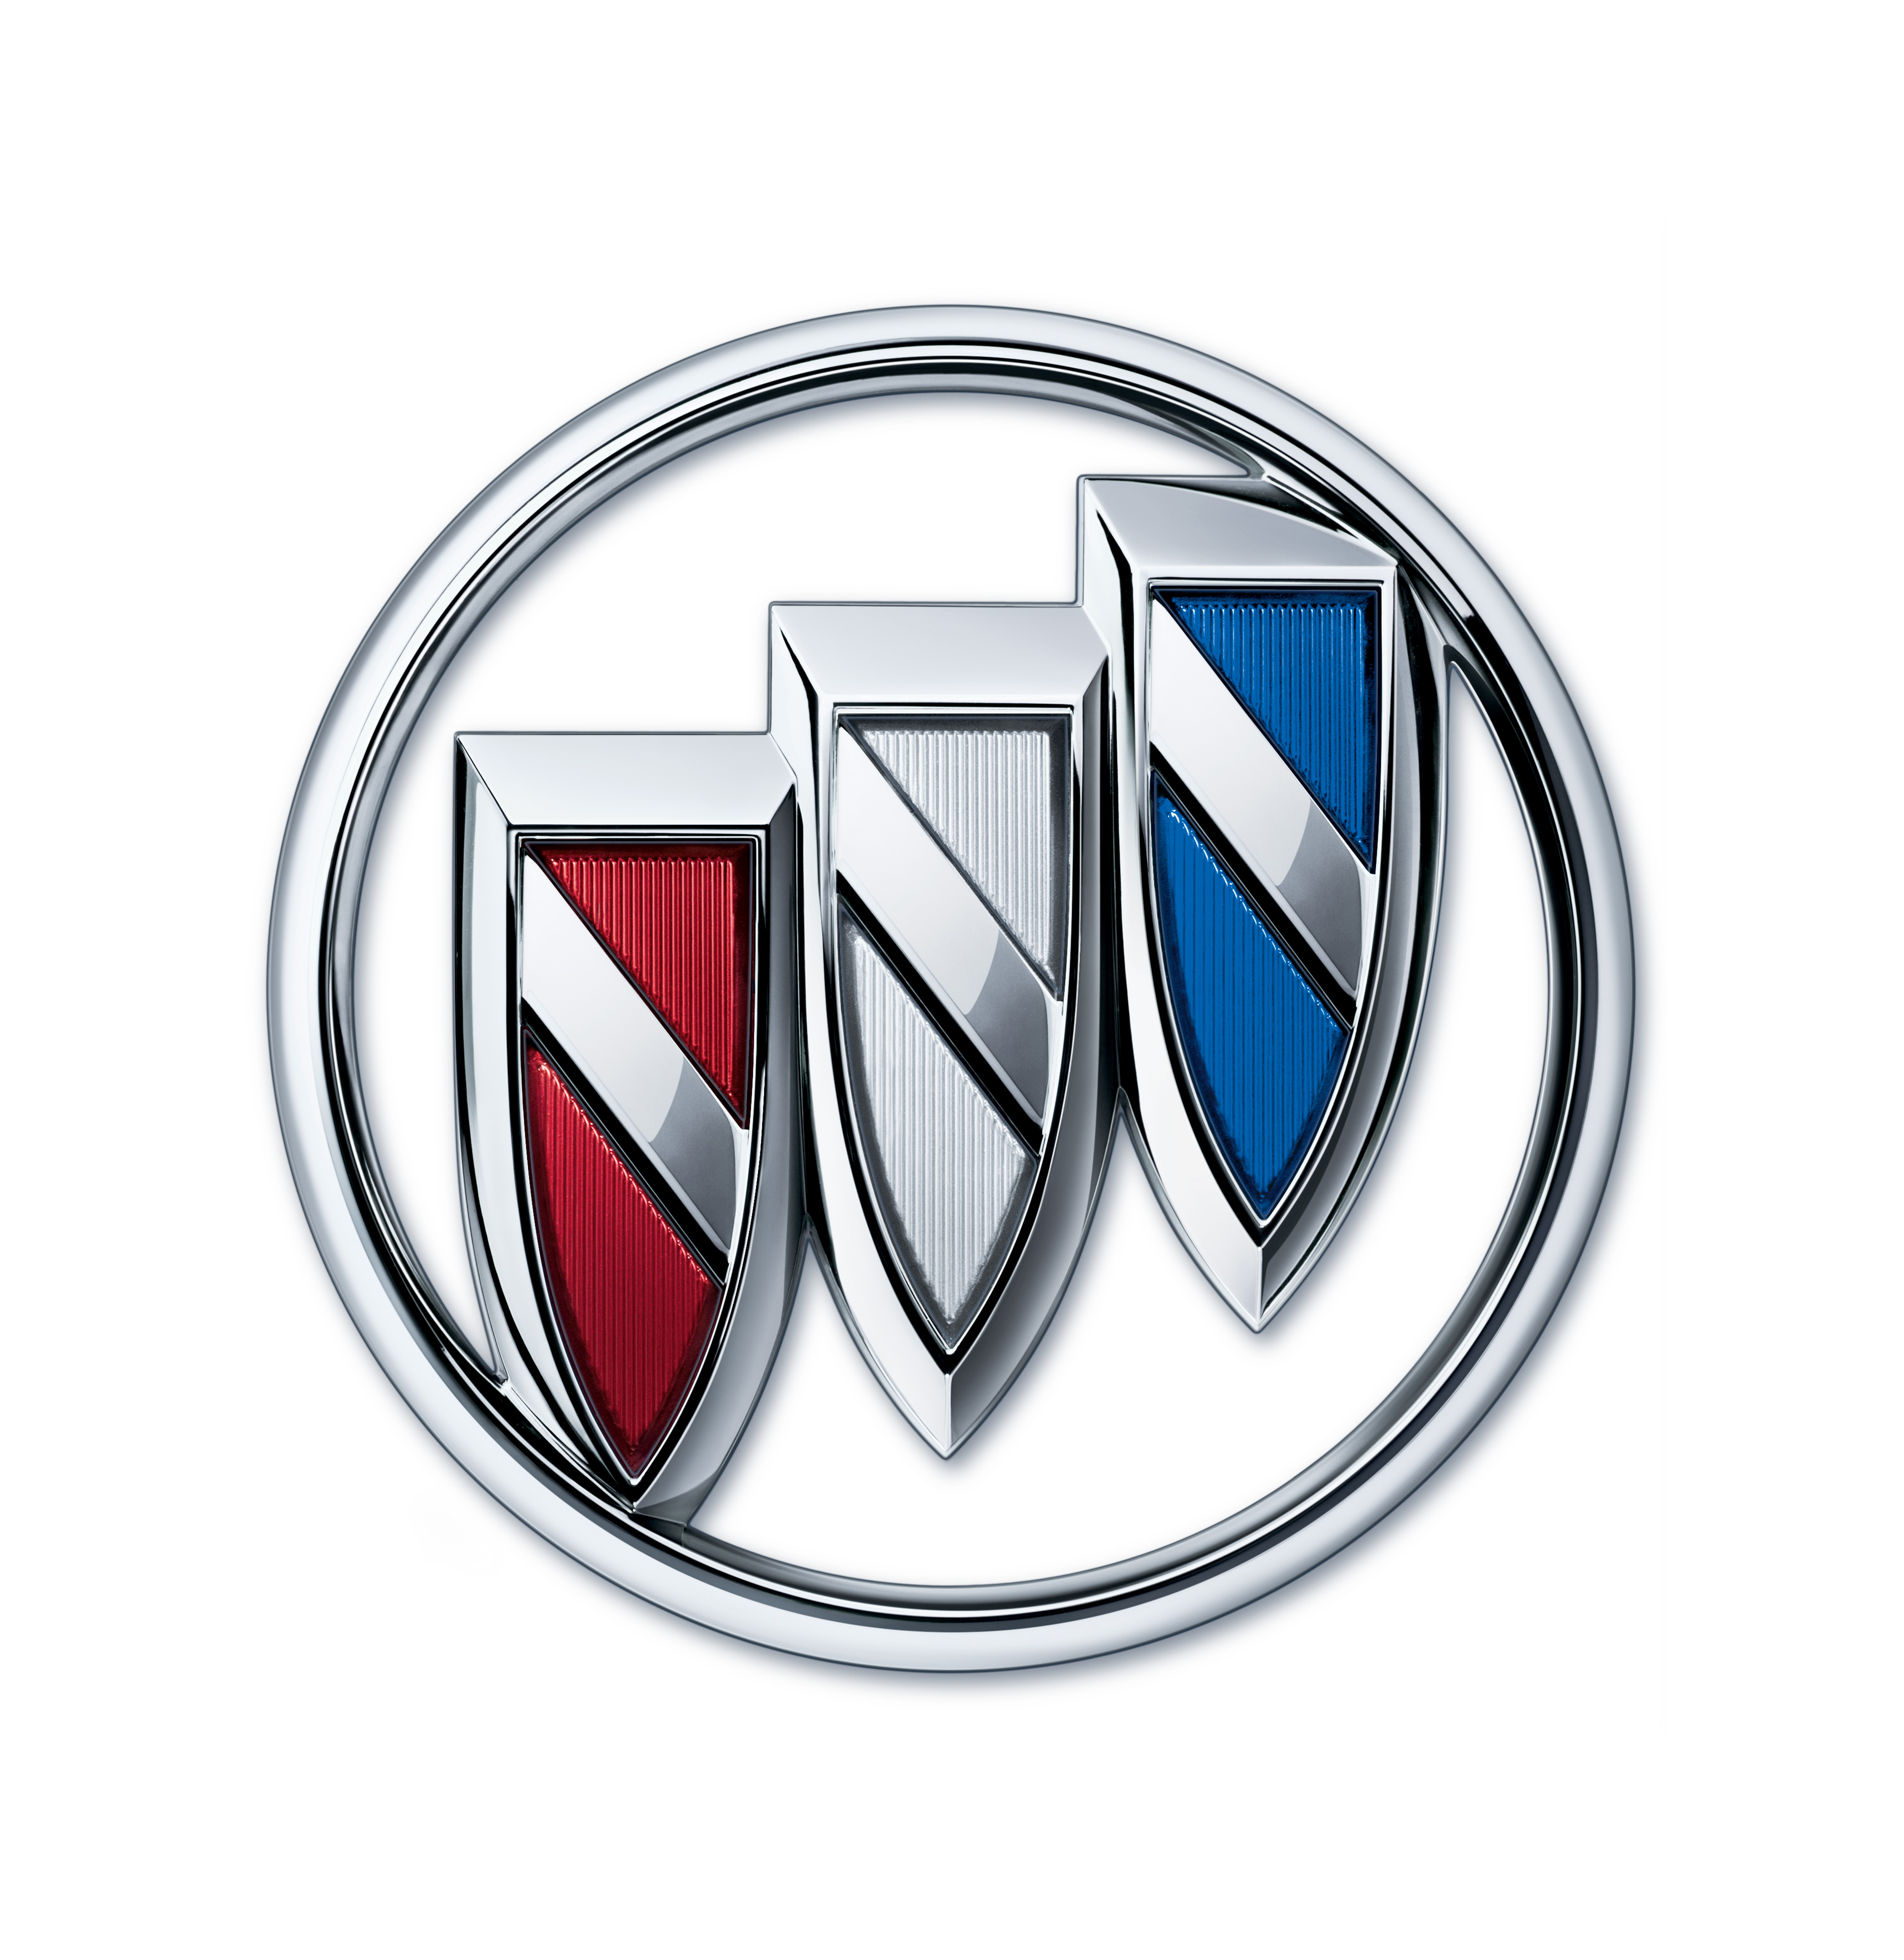 Revised Tri Shield Insignia Introduces New Face Of Buick